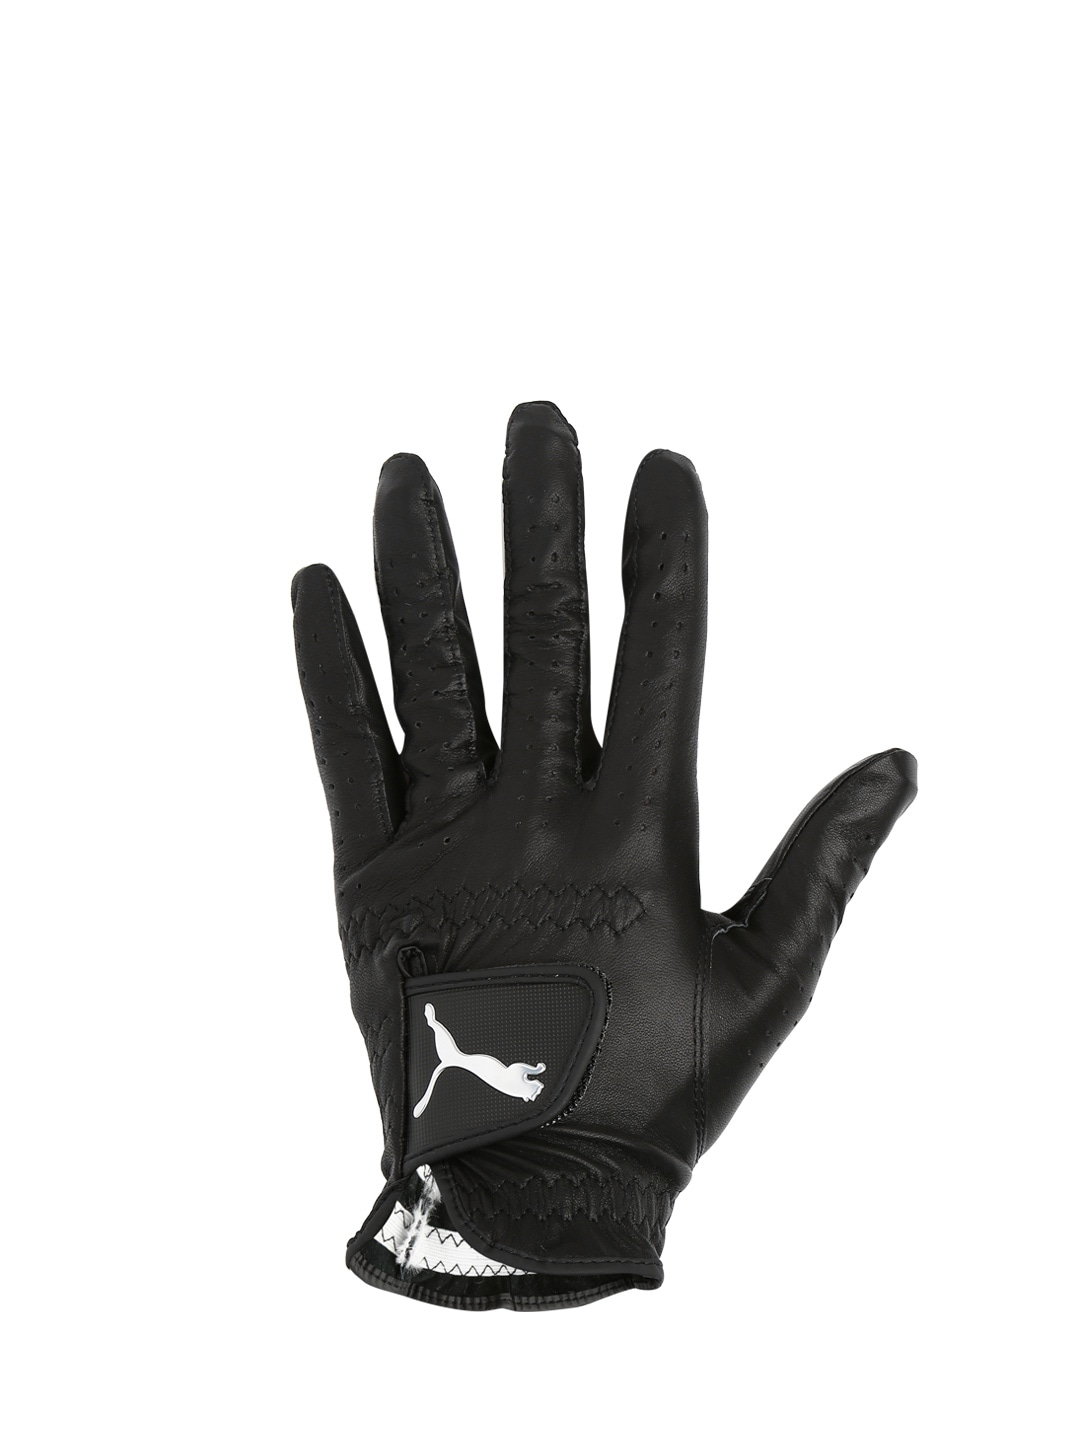 Motorcycle leather gloves india -  Gloves Gloves Online In India For Men Women Motorcycle